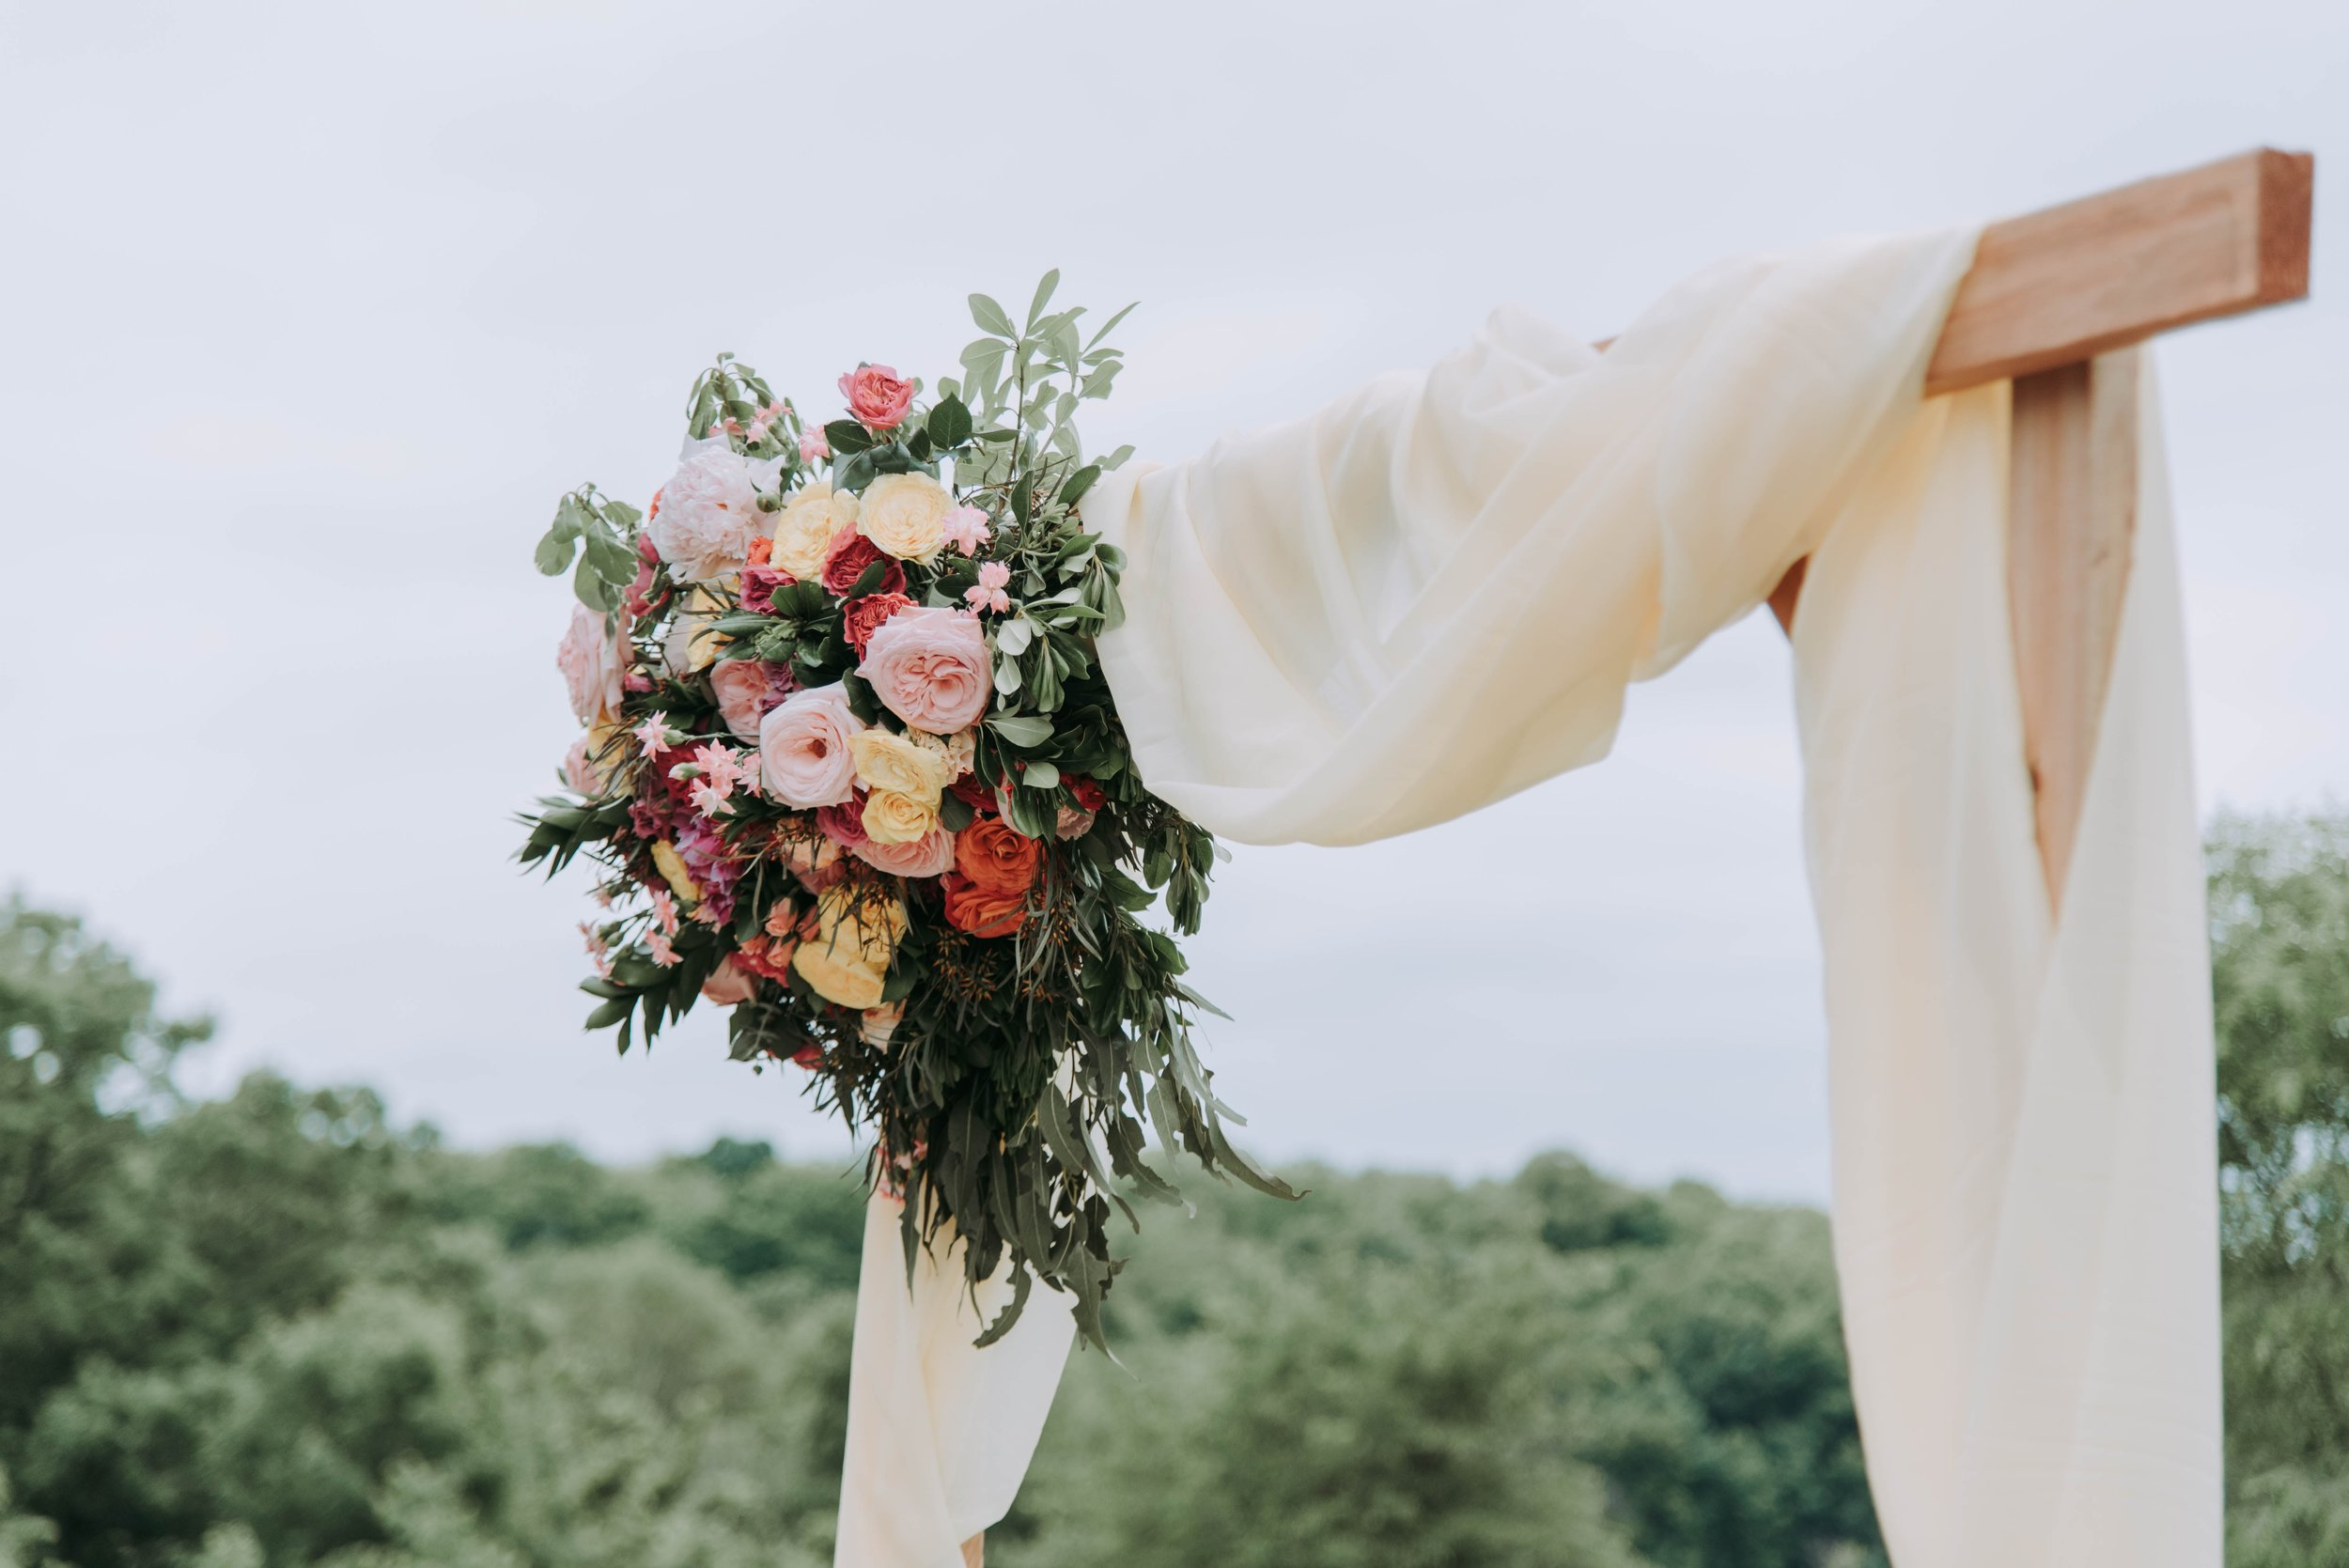 Flower Installations - Ask any photographer and they'll tell you that flowers will make all the difference at your wedding. They can make any dress or room pop in just the right way. Get yourself on Pinterest and find something you love and see what your florist can do.